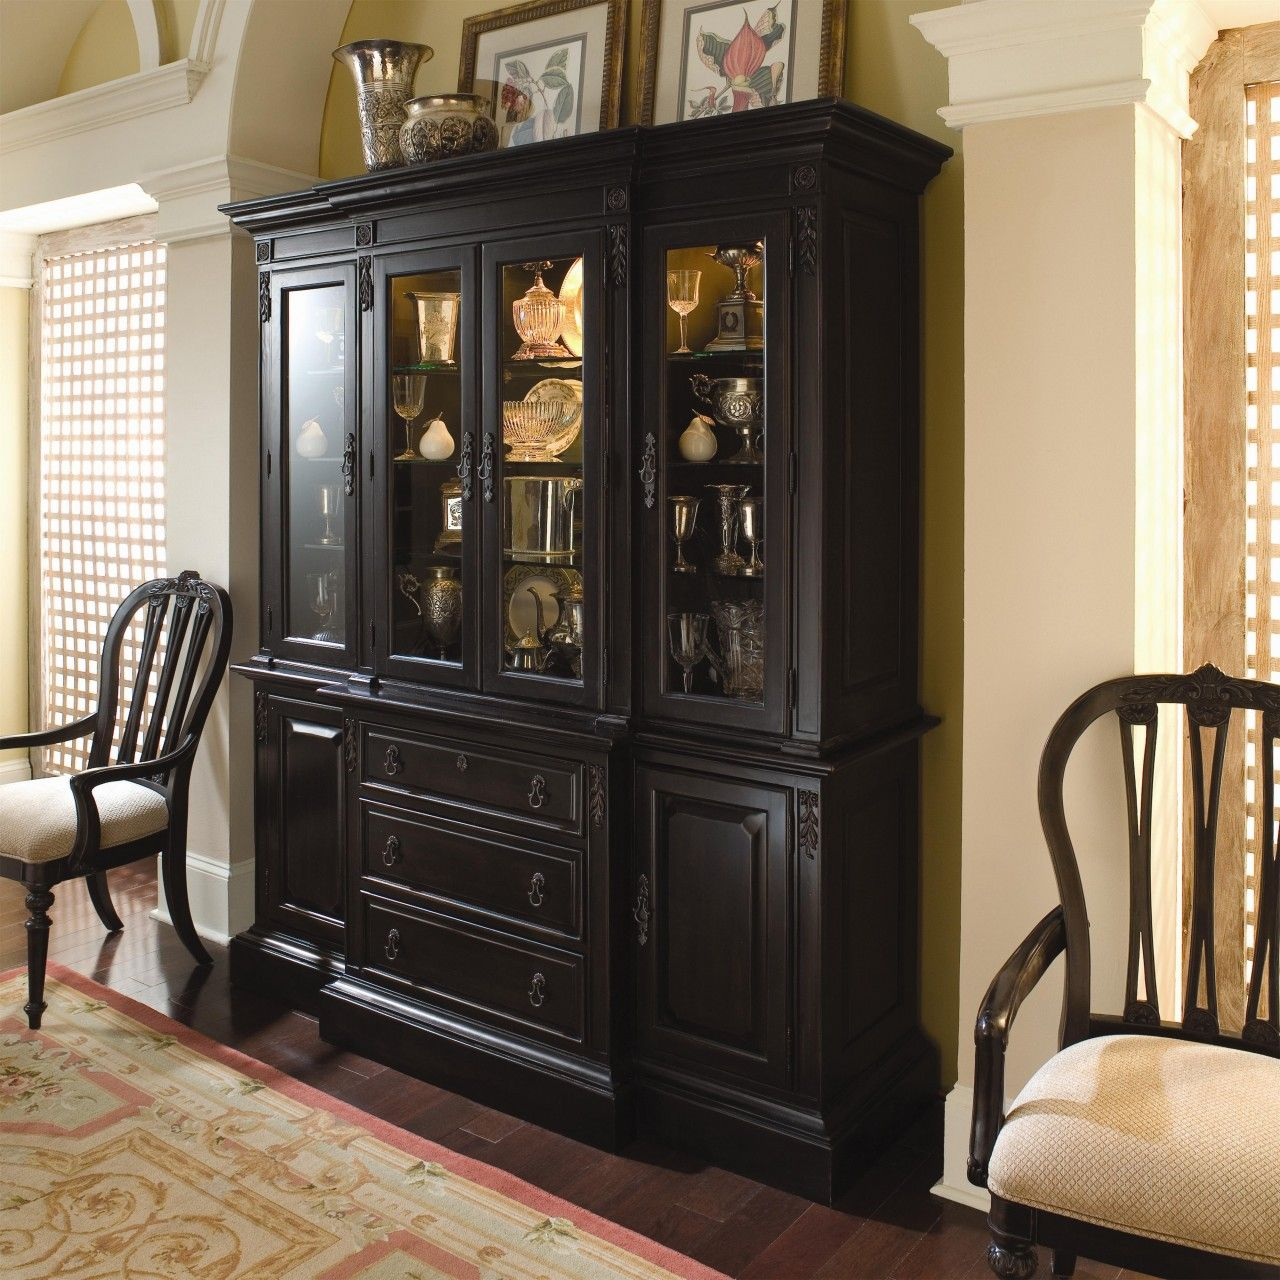 Dining Room Hutch Design Ideas Interior China Cabinet For A Diningroom With Black Color